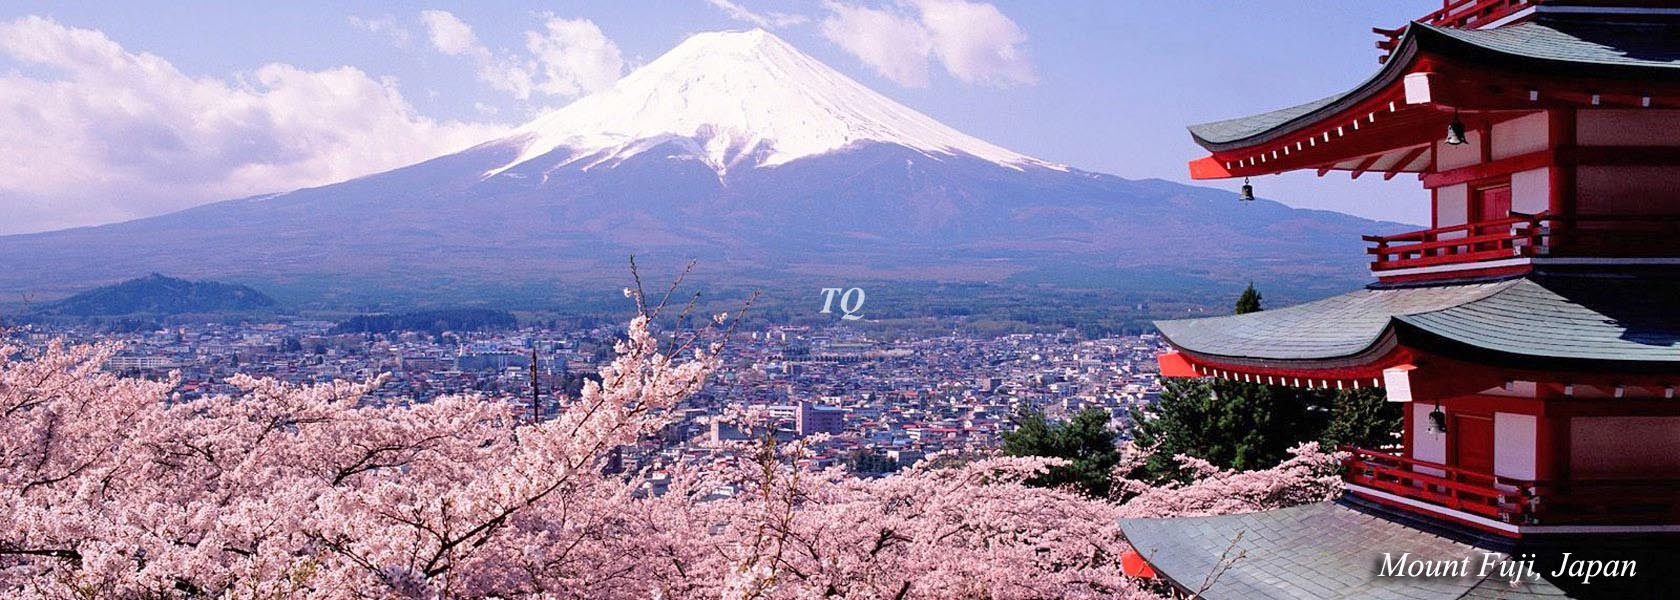 Best Travel Agency In Singapore For Japan Tours